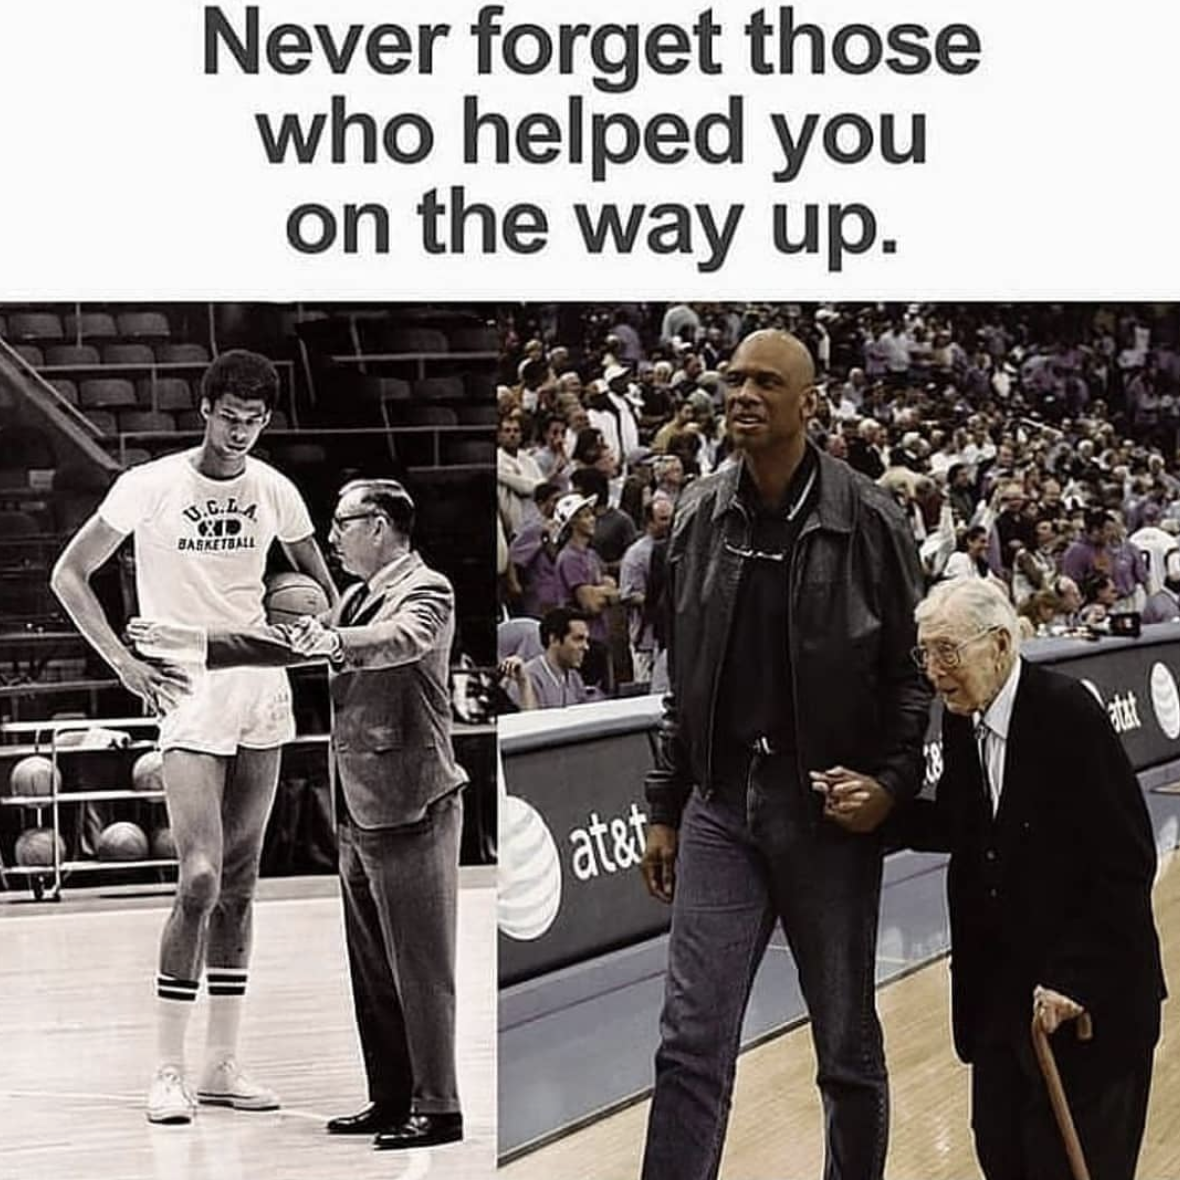 [Image] Always remember the people who helped you, no matter how successful you are.